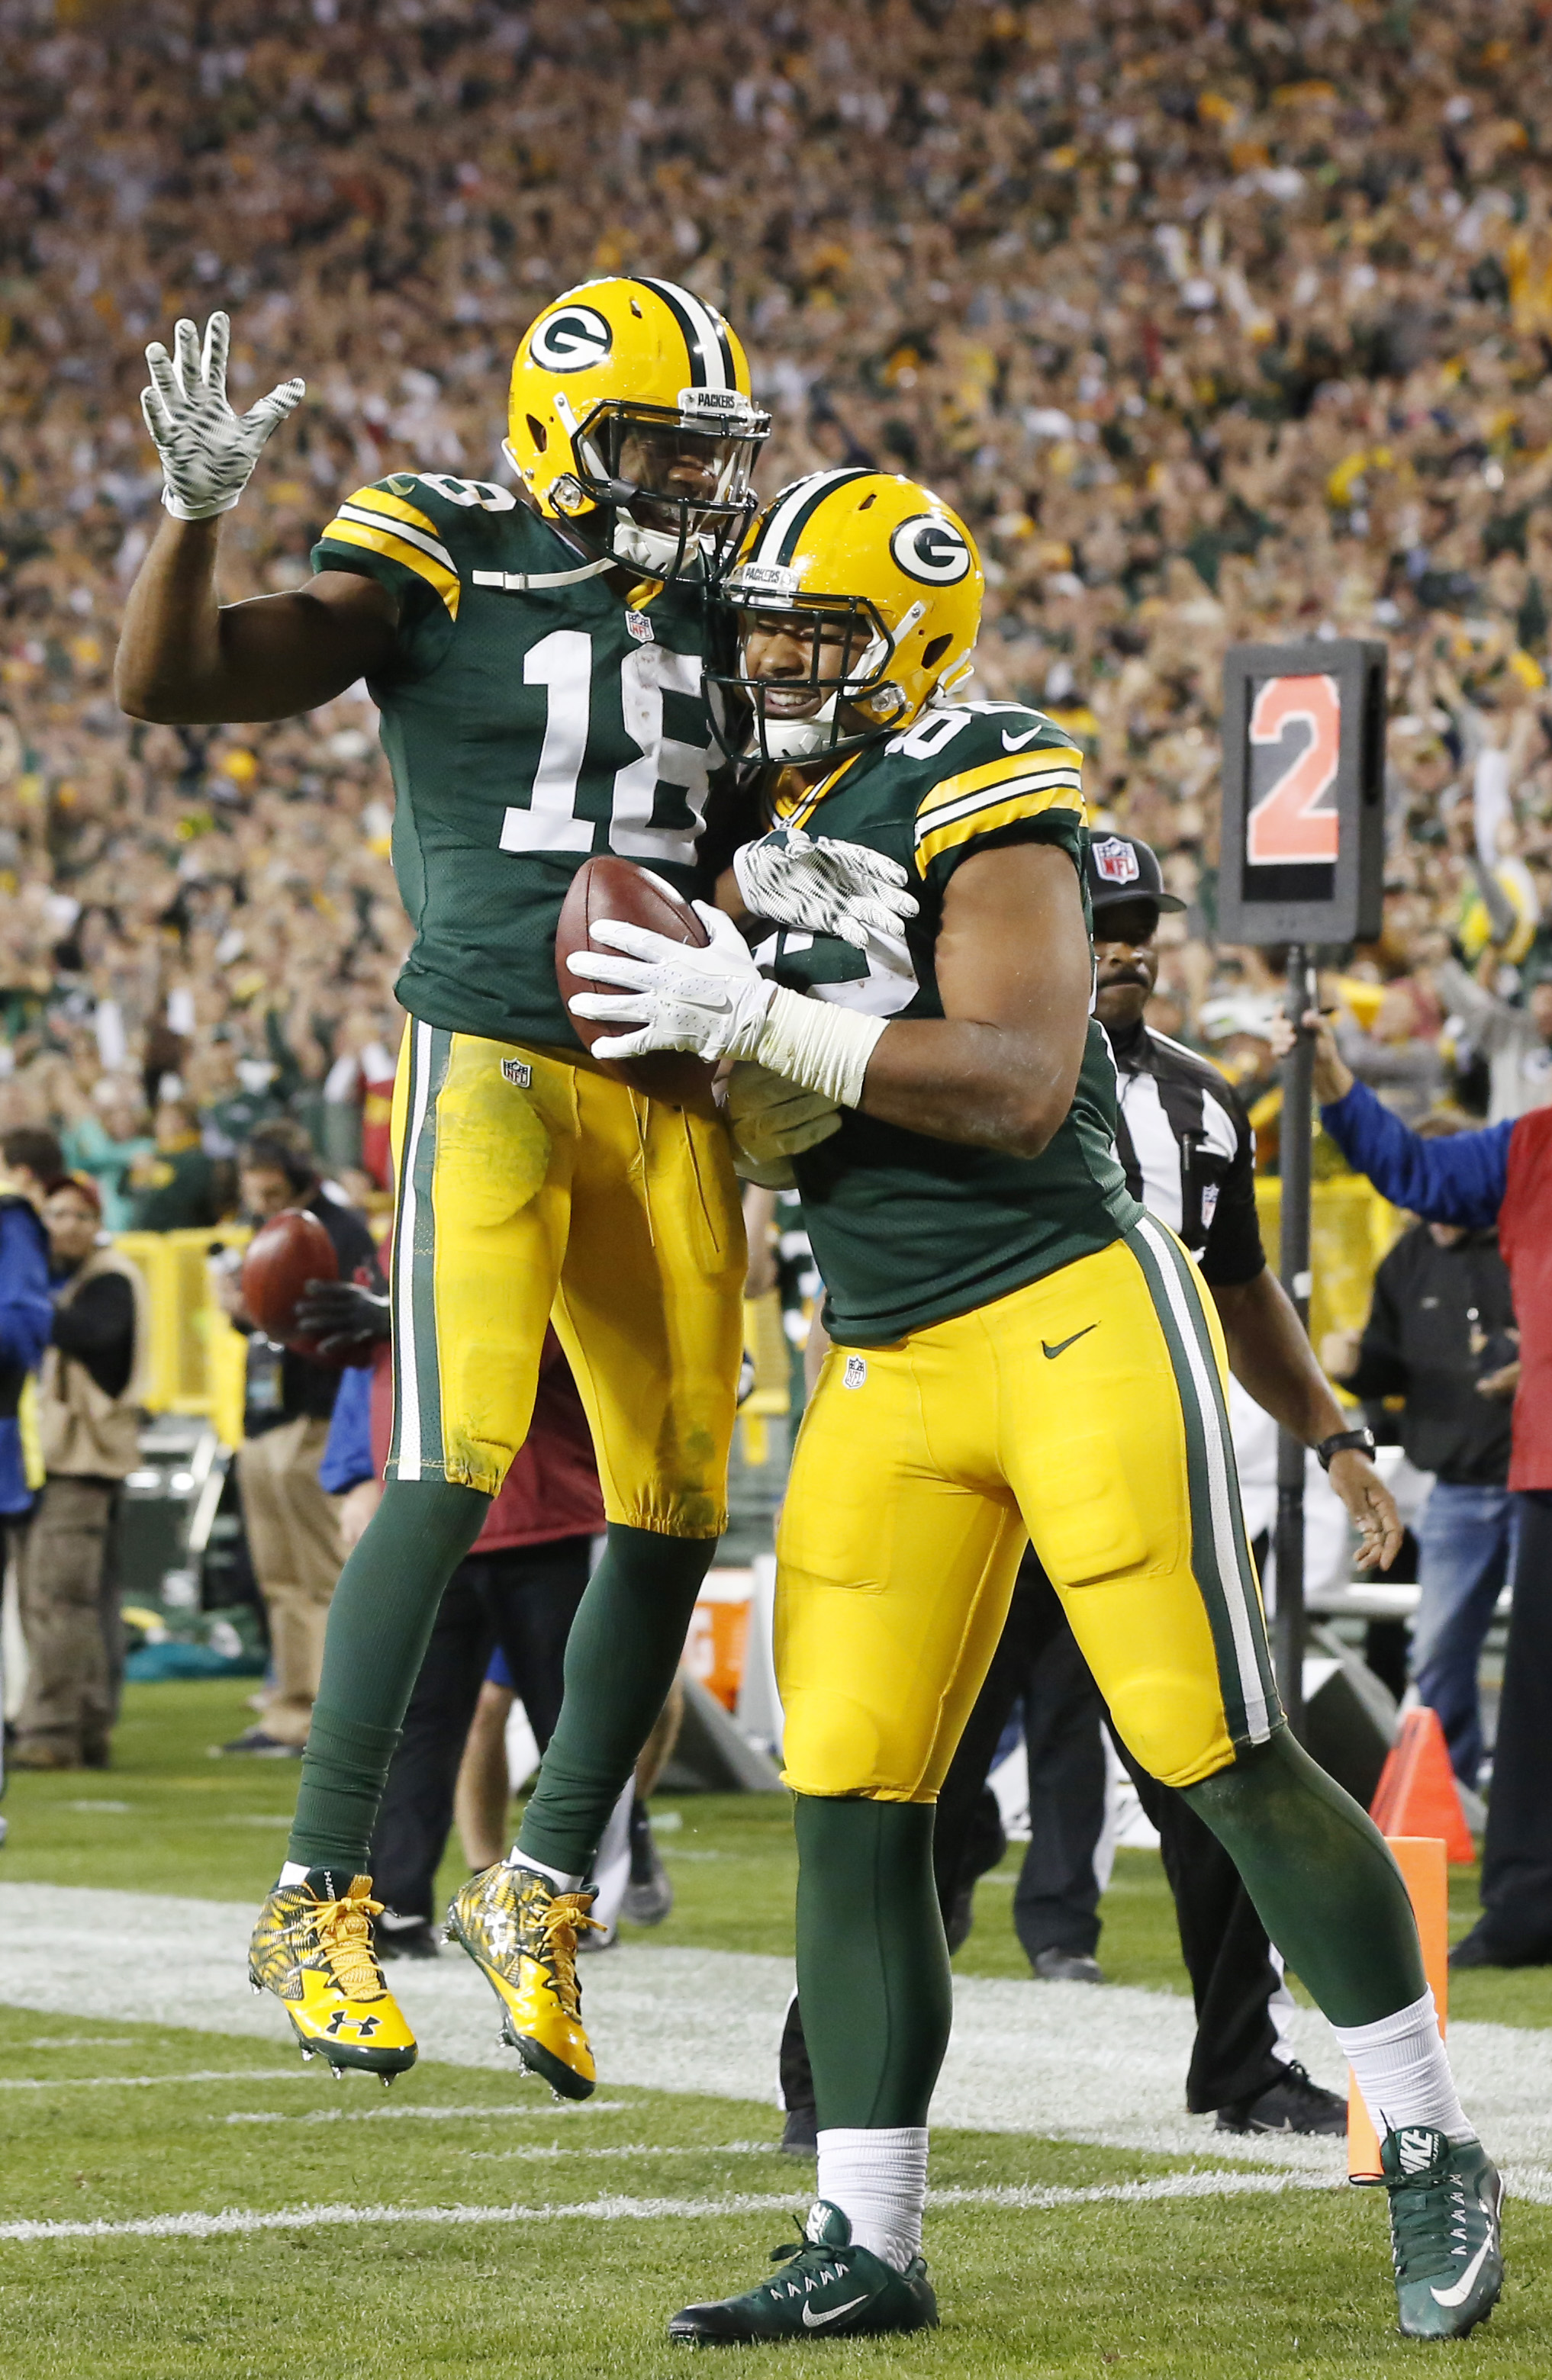 Green Bay Packers' Richard Rodgers is congratulated by Randall Cobb (18) after catching a touchdown pass during the second half of an NFL football game against the Seattle Seahawks Sunday, Sept. 20, 2015, in Green Bay, Wis. (AP Photo/Mike Roemer)